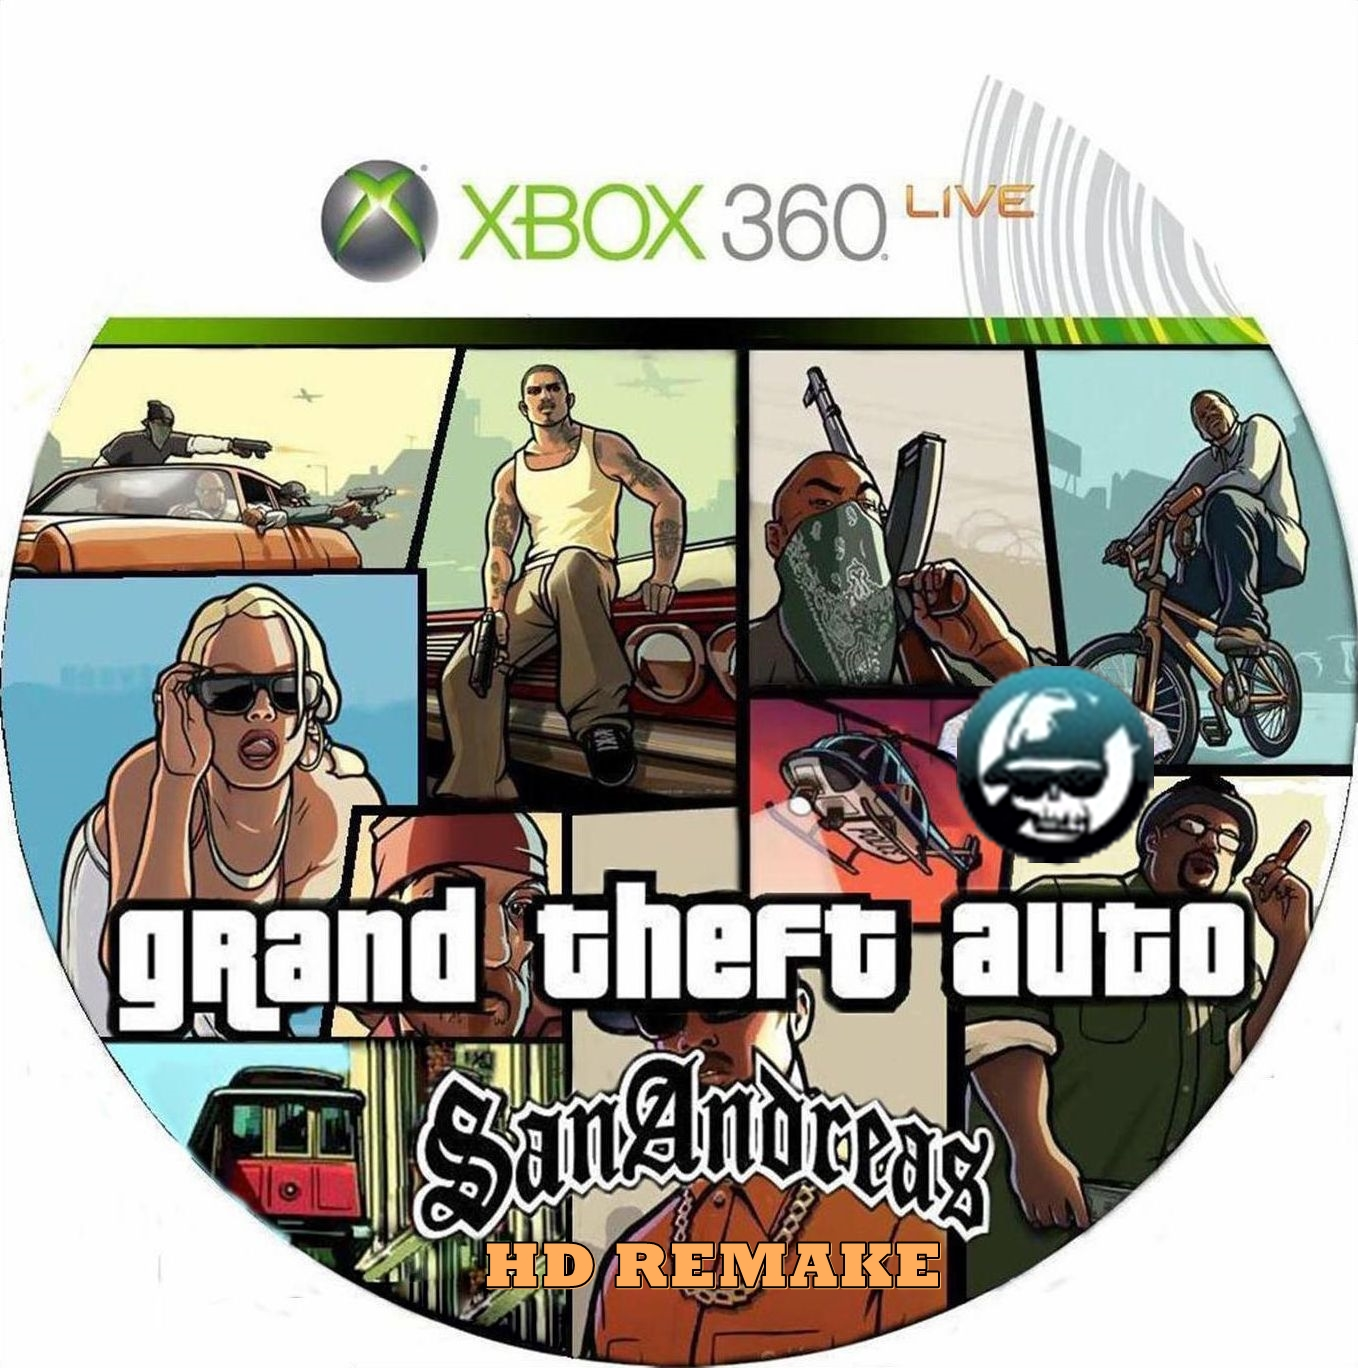 Comprar Jogos Ps 2 Xbox 360 Dvd Xbox360 Playstation 2 Ps2: Grand Theft Auto San Andreas HD Remake (Cover 2015) Capa